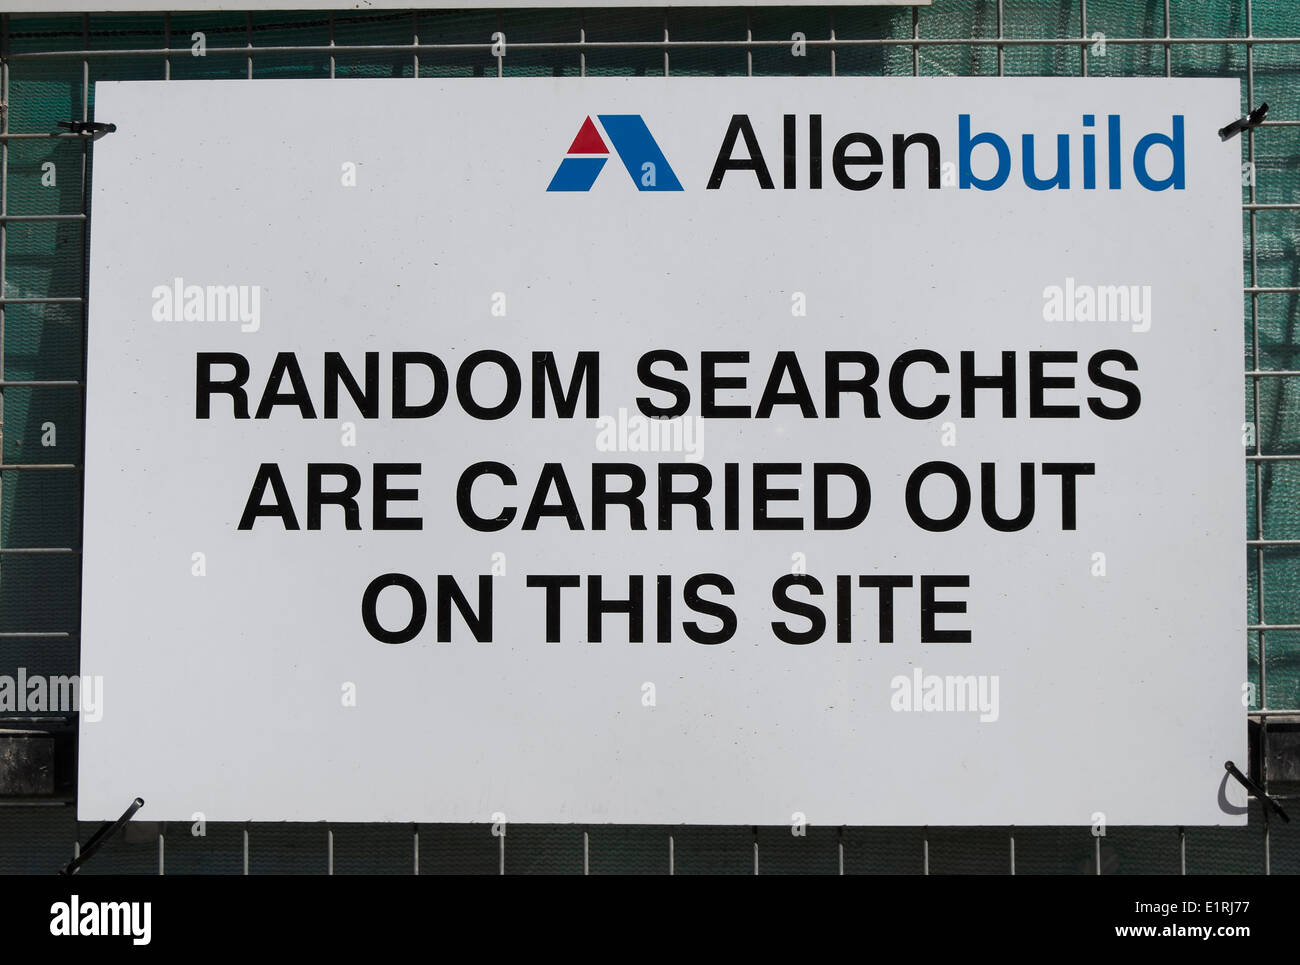 random searches are carried out on this site, notice at building site in wandsworth, london, england - Stock Image